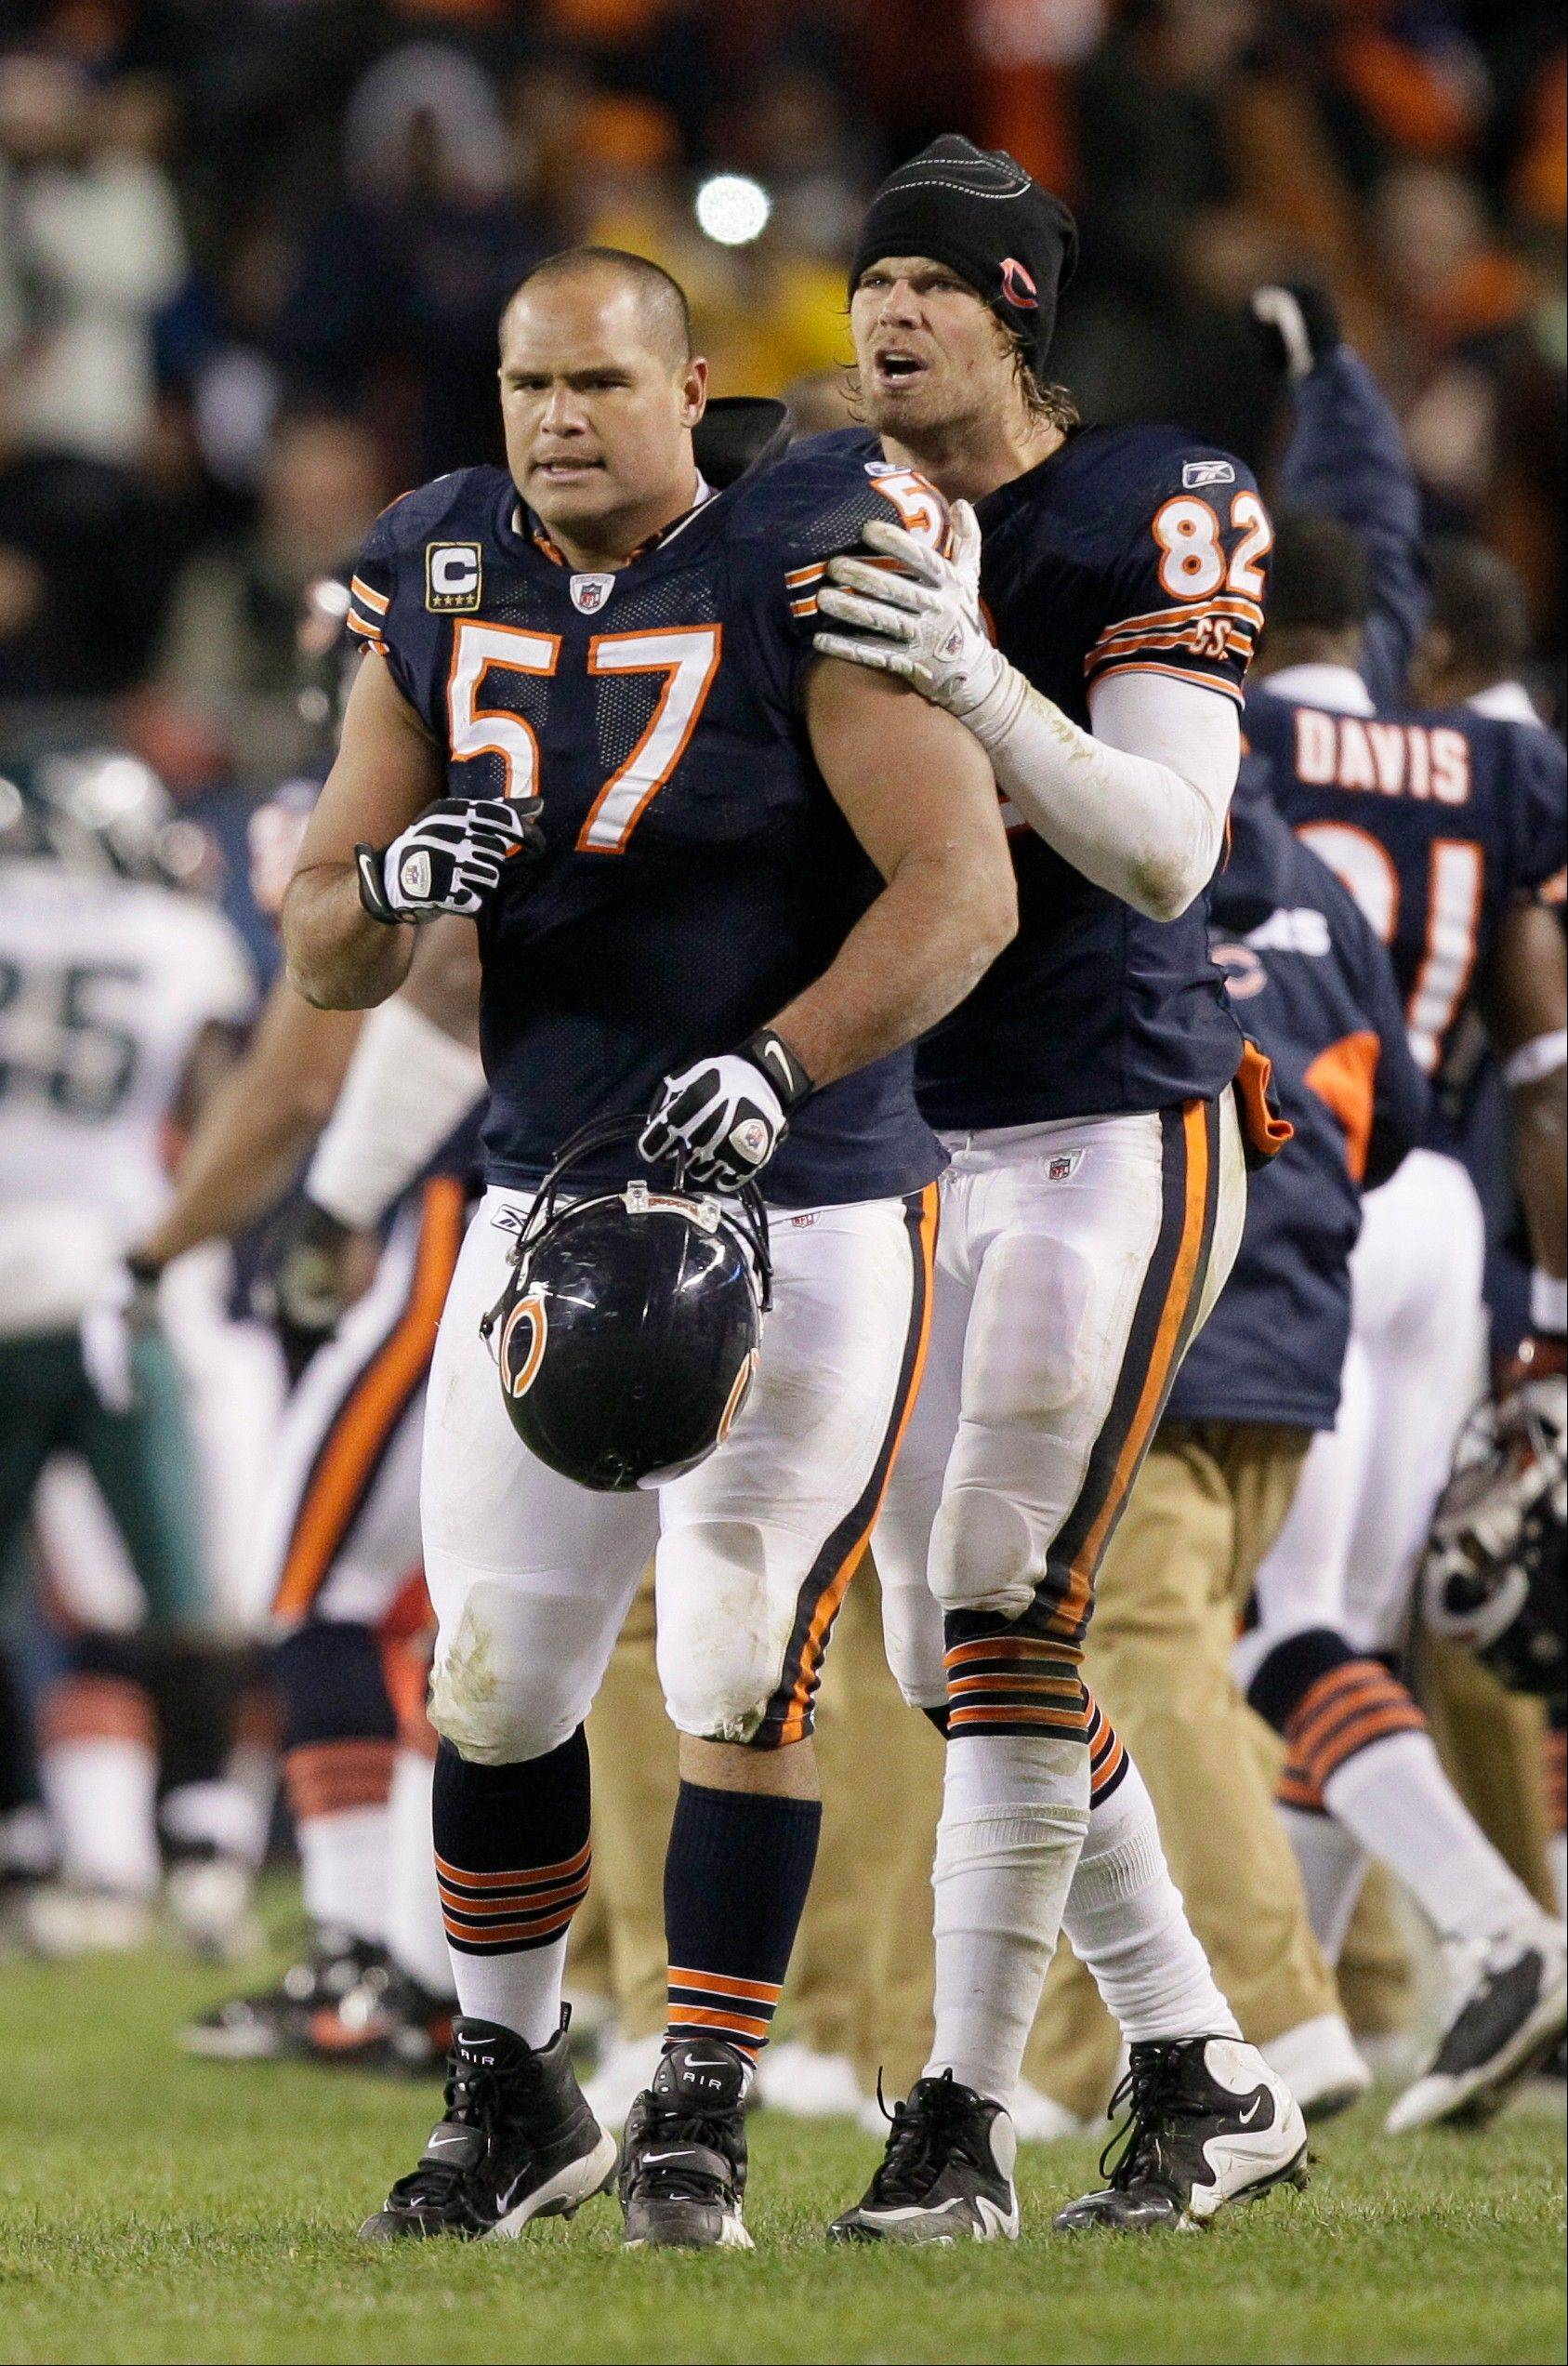 Olin Kreutz, now the center for the Saints, faces his former team when the Bears visit New Orleans on Sunday.